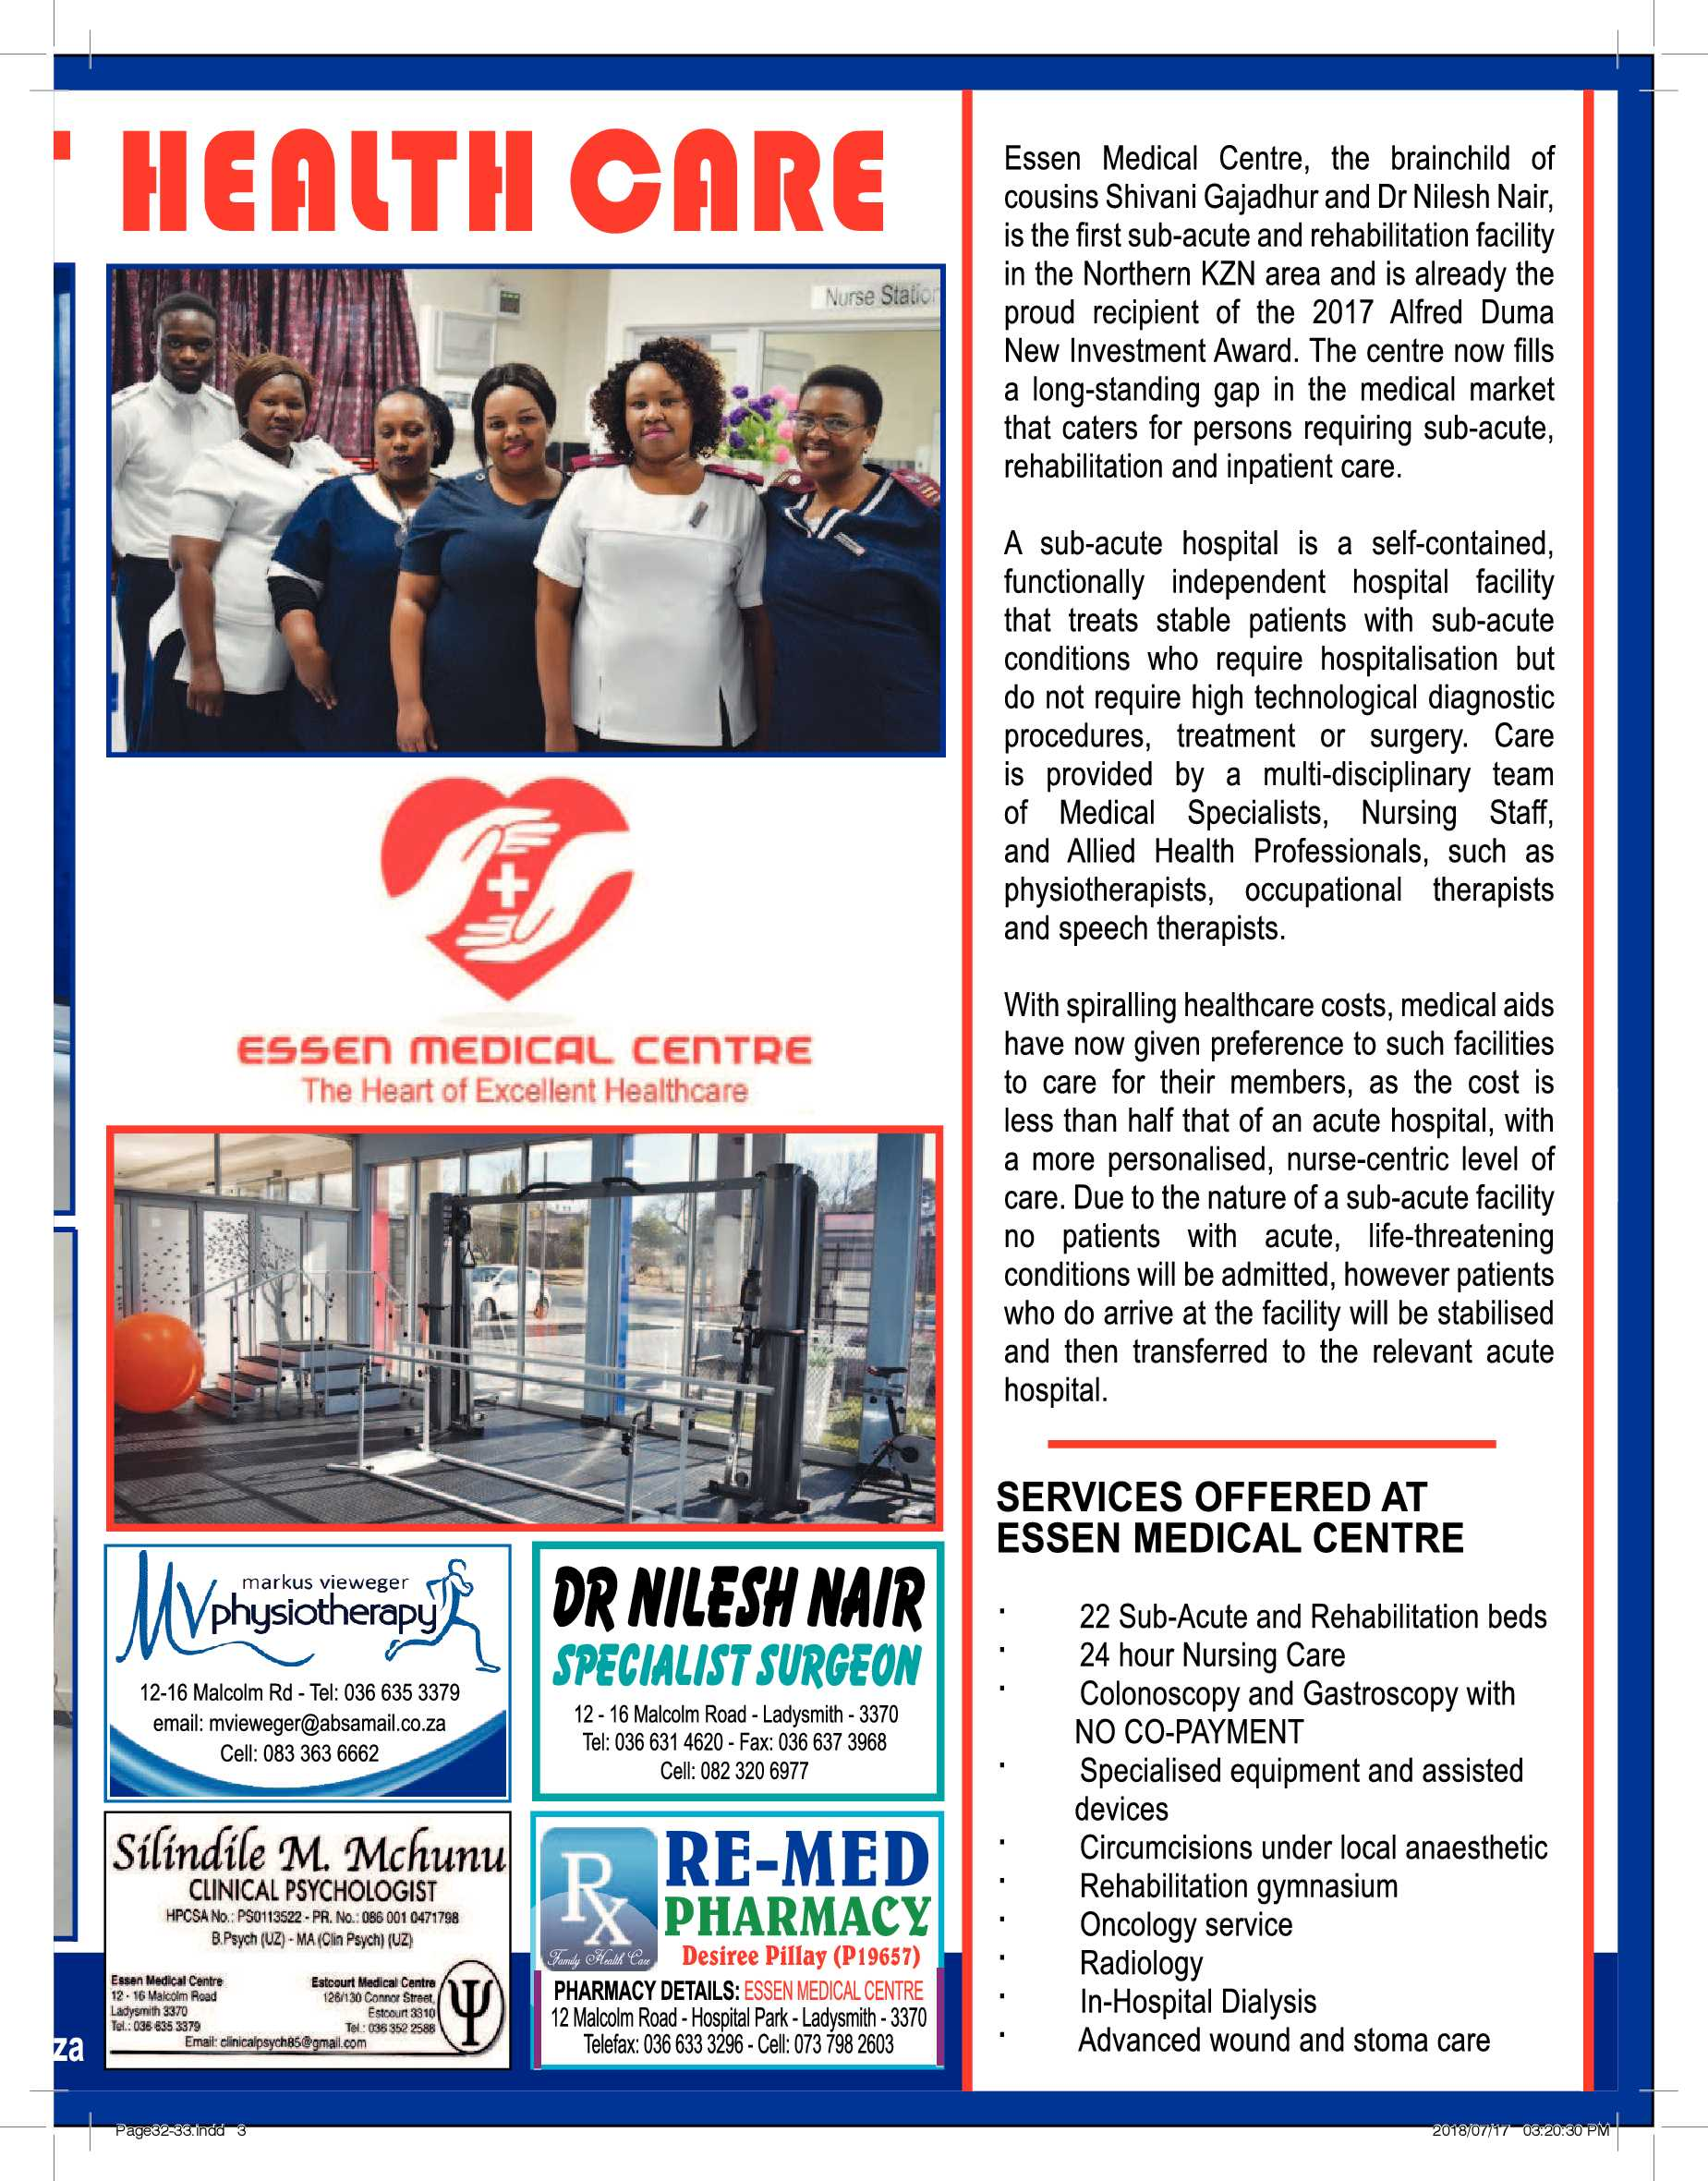 northern-kzn-midlands-get-august-2018-epapers-page-35